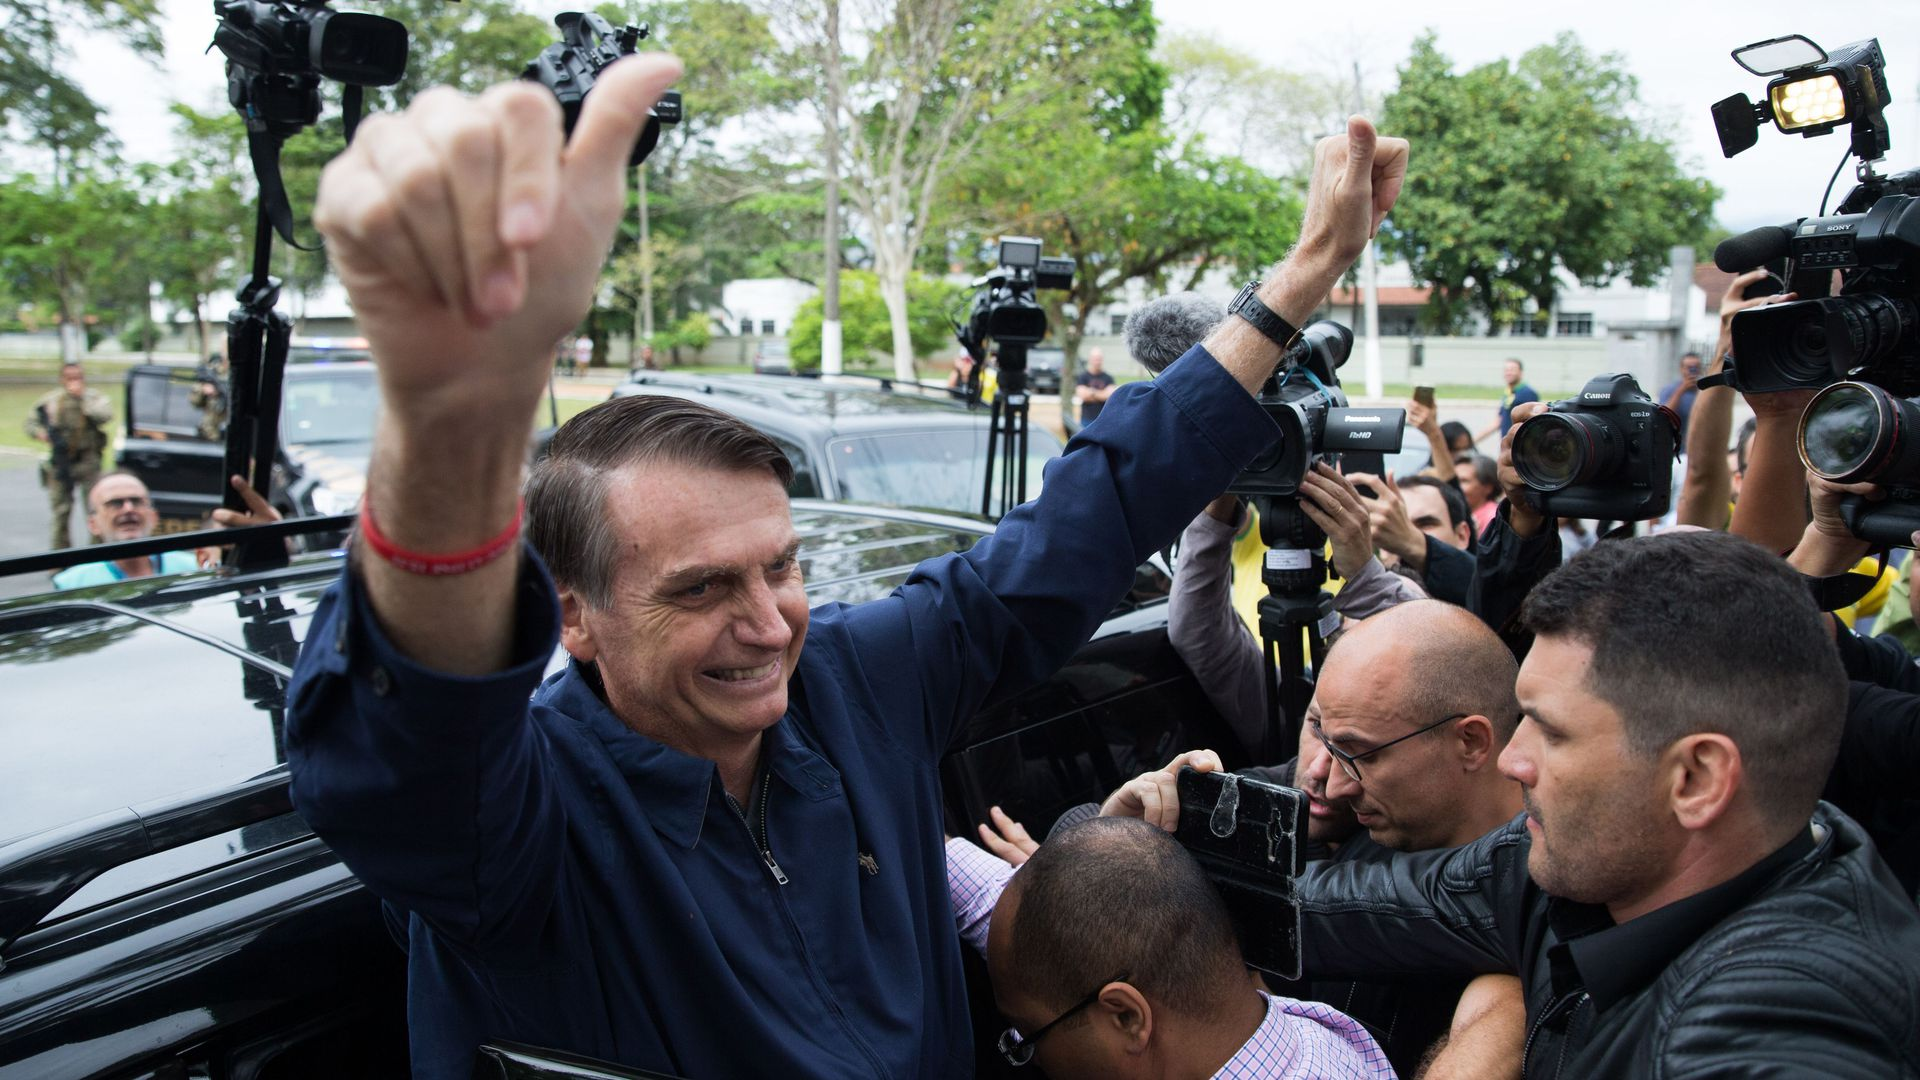 Jair Bolsonaro gets out of car, puts arms and thumbs up while surrounded by people